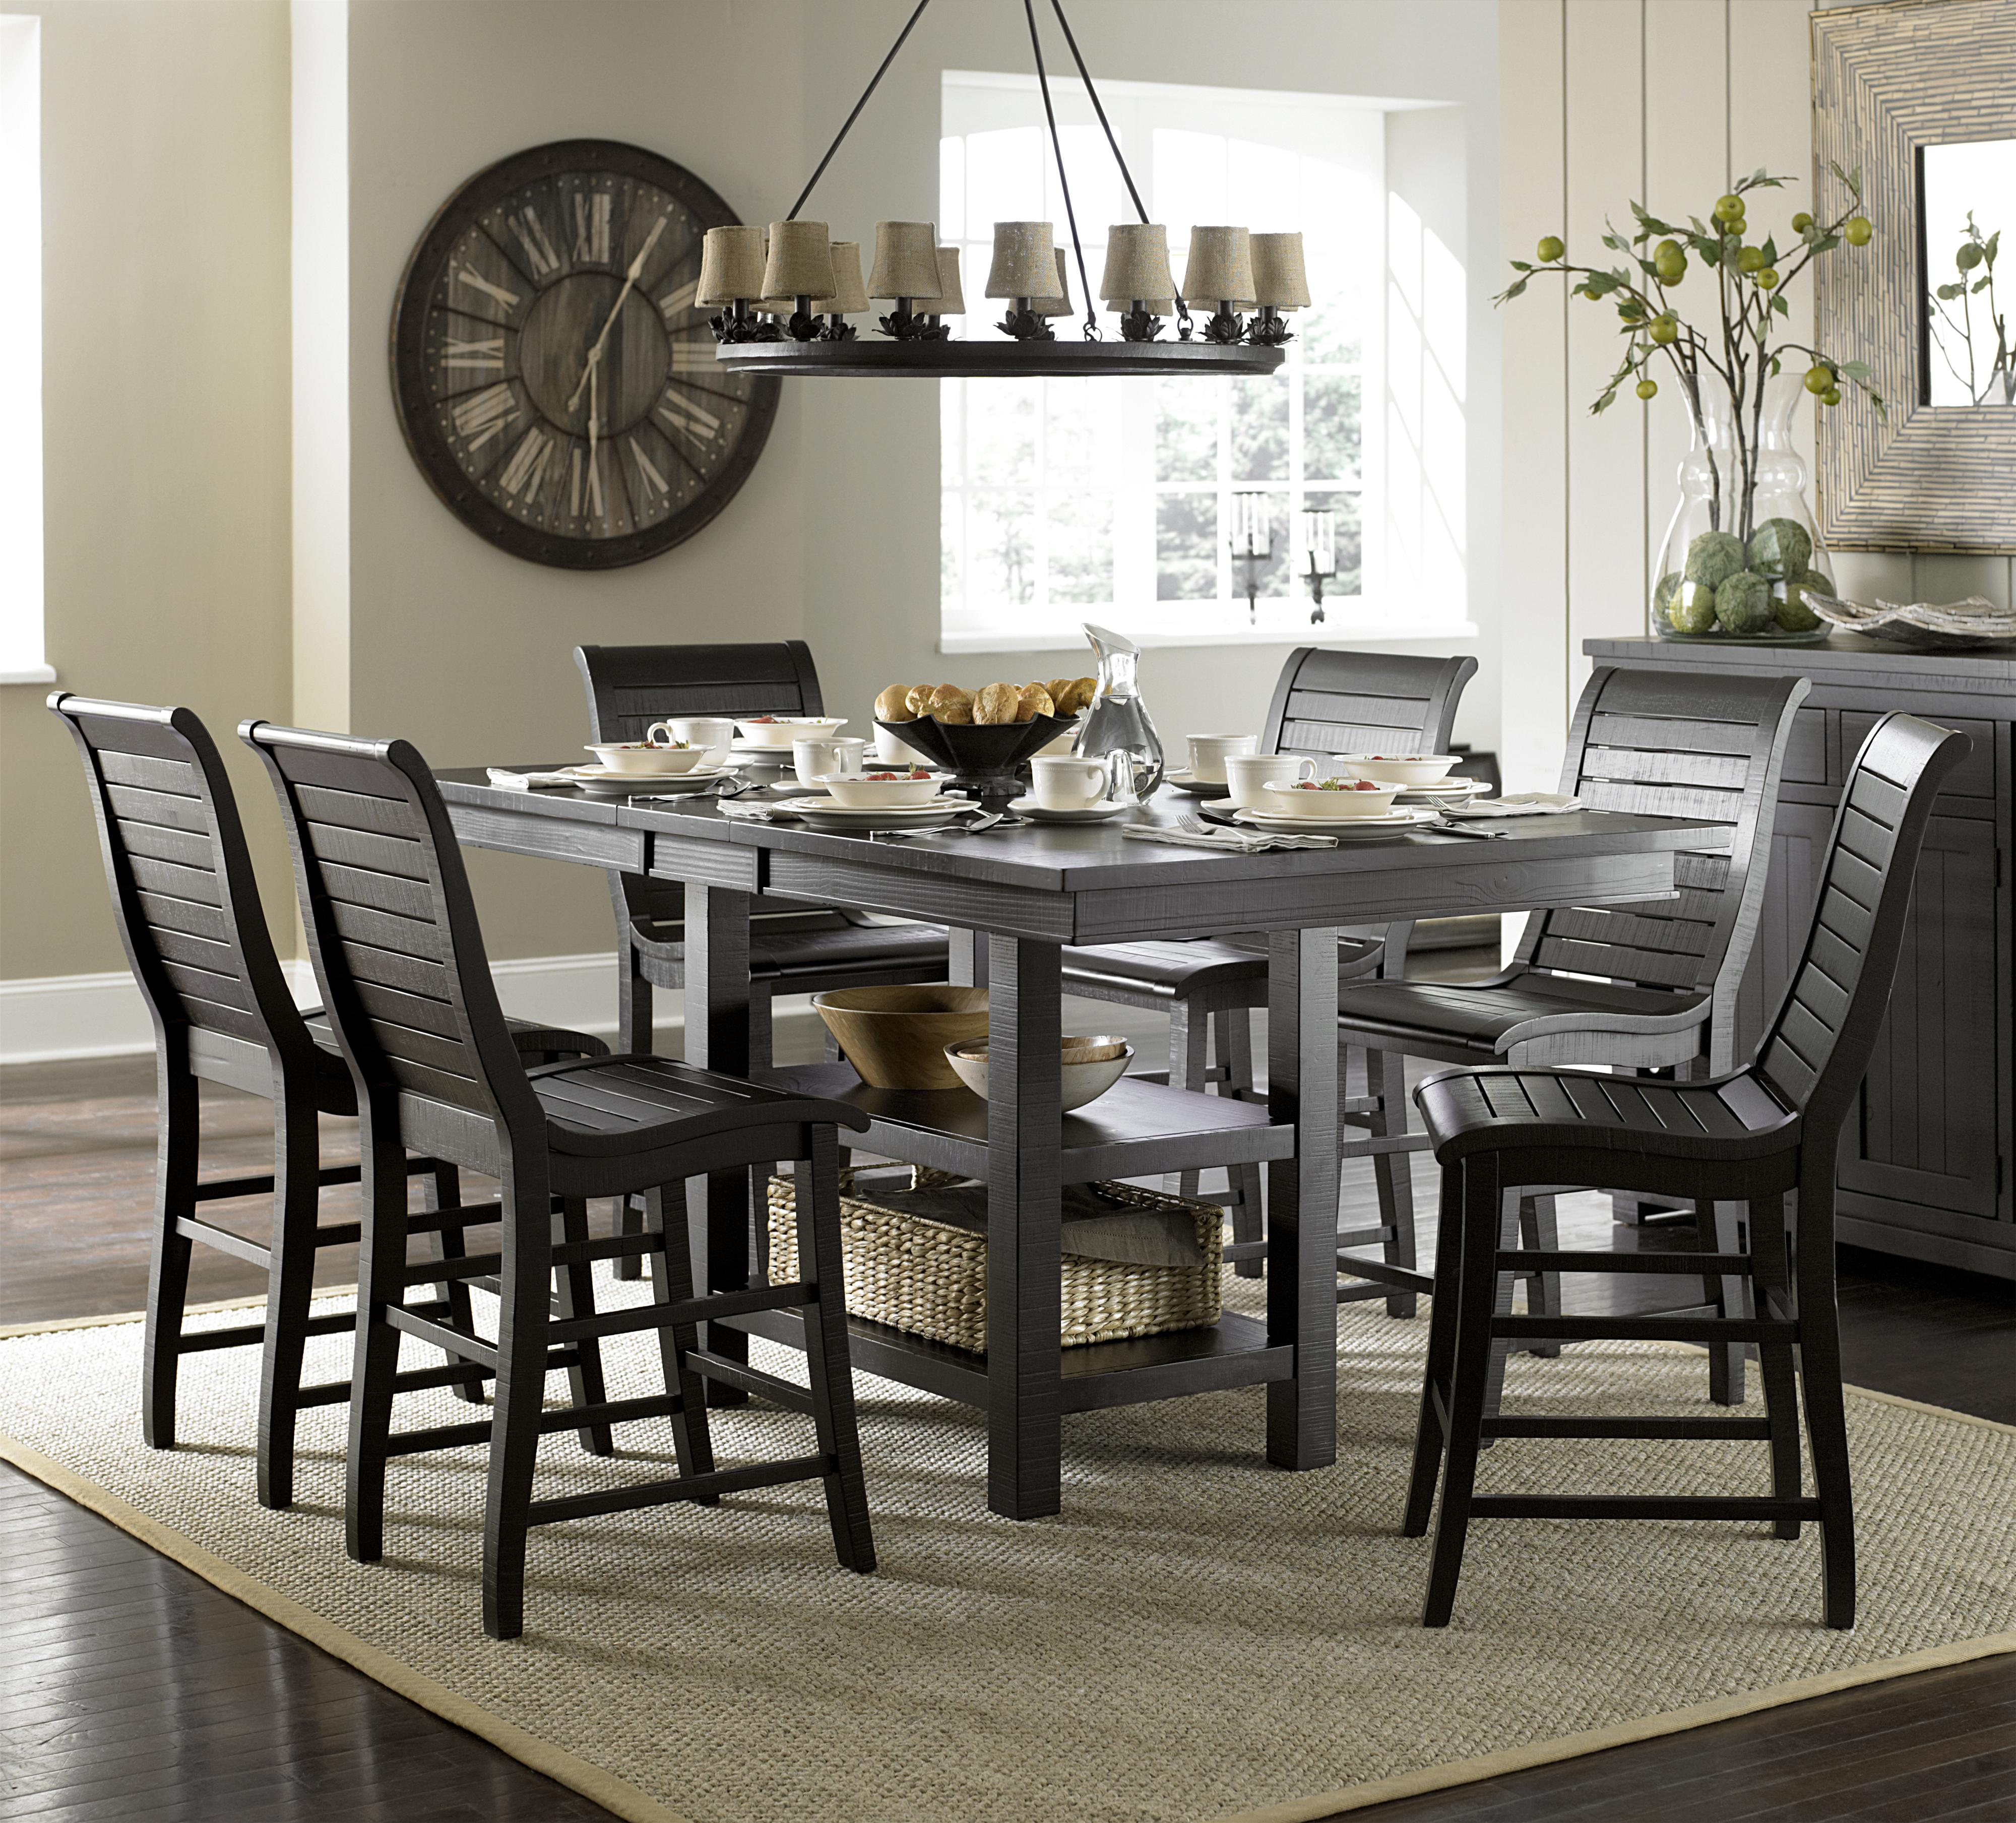 Willow Dining 7-Piece Rect. Counter Height Table Set by Progressive Furniture at Value City Furniture